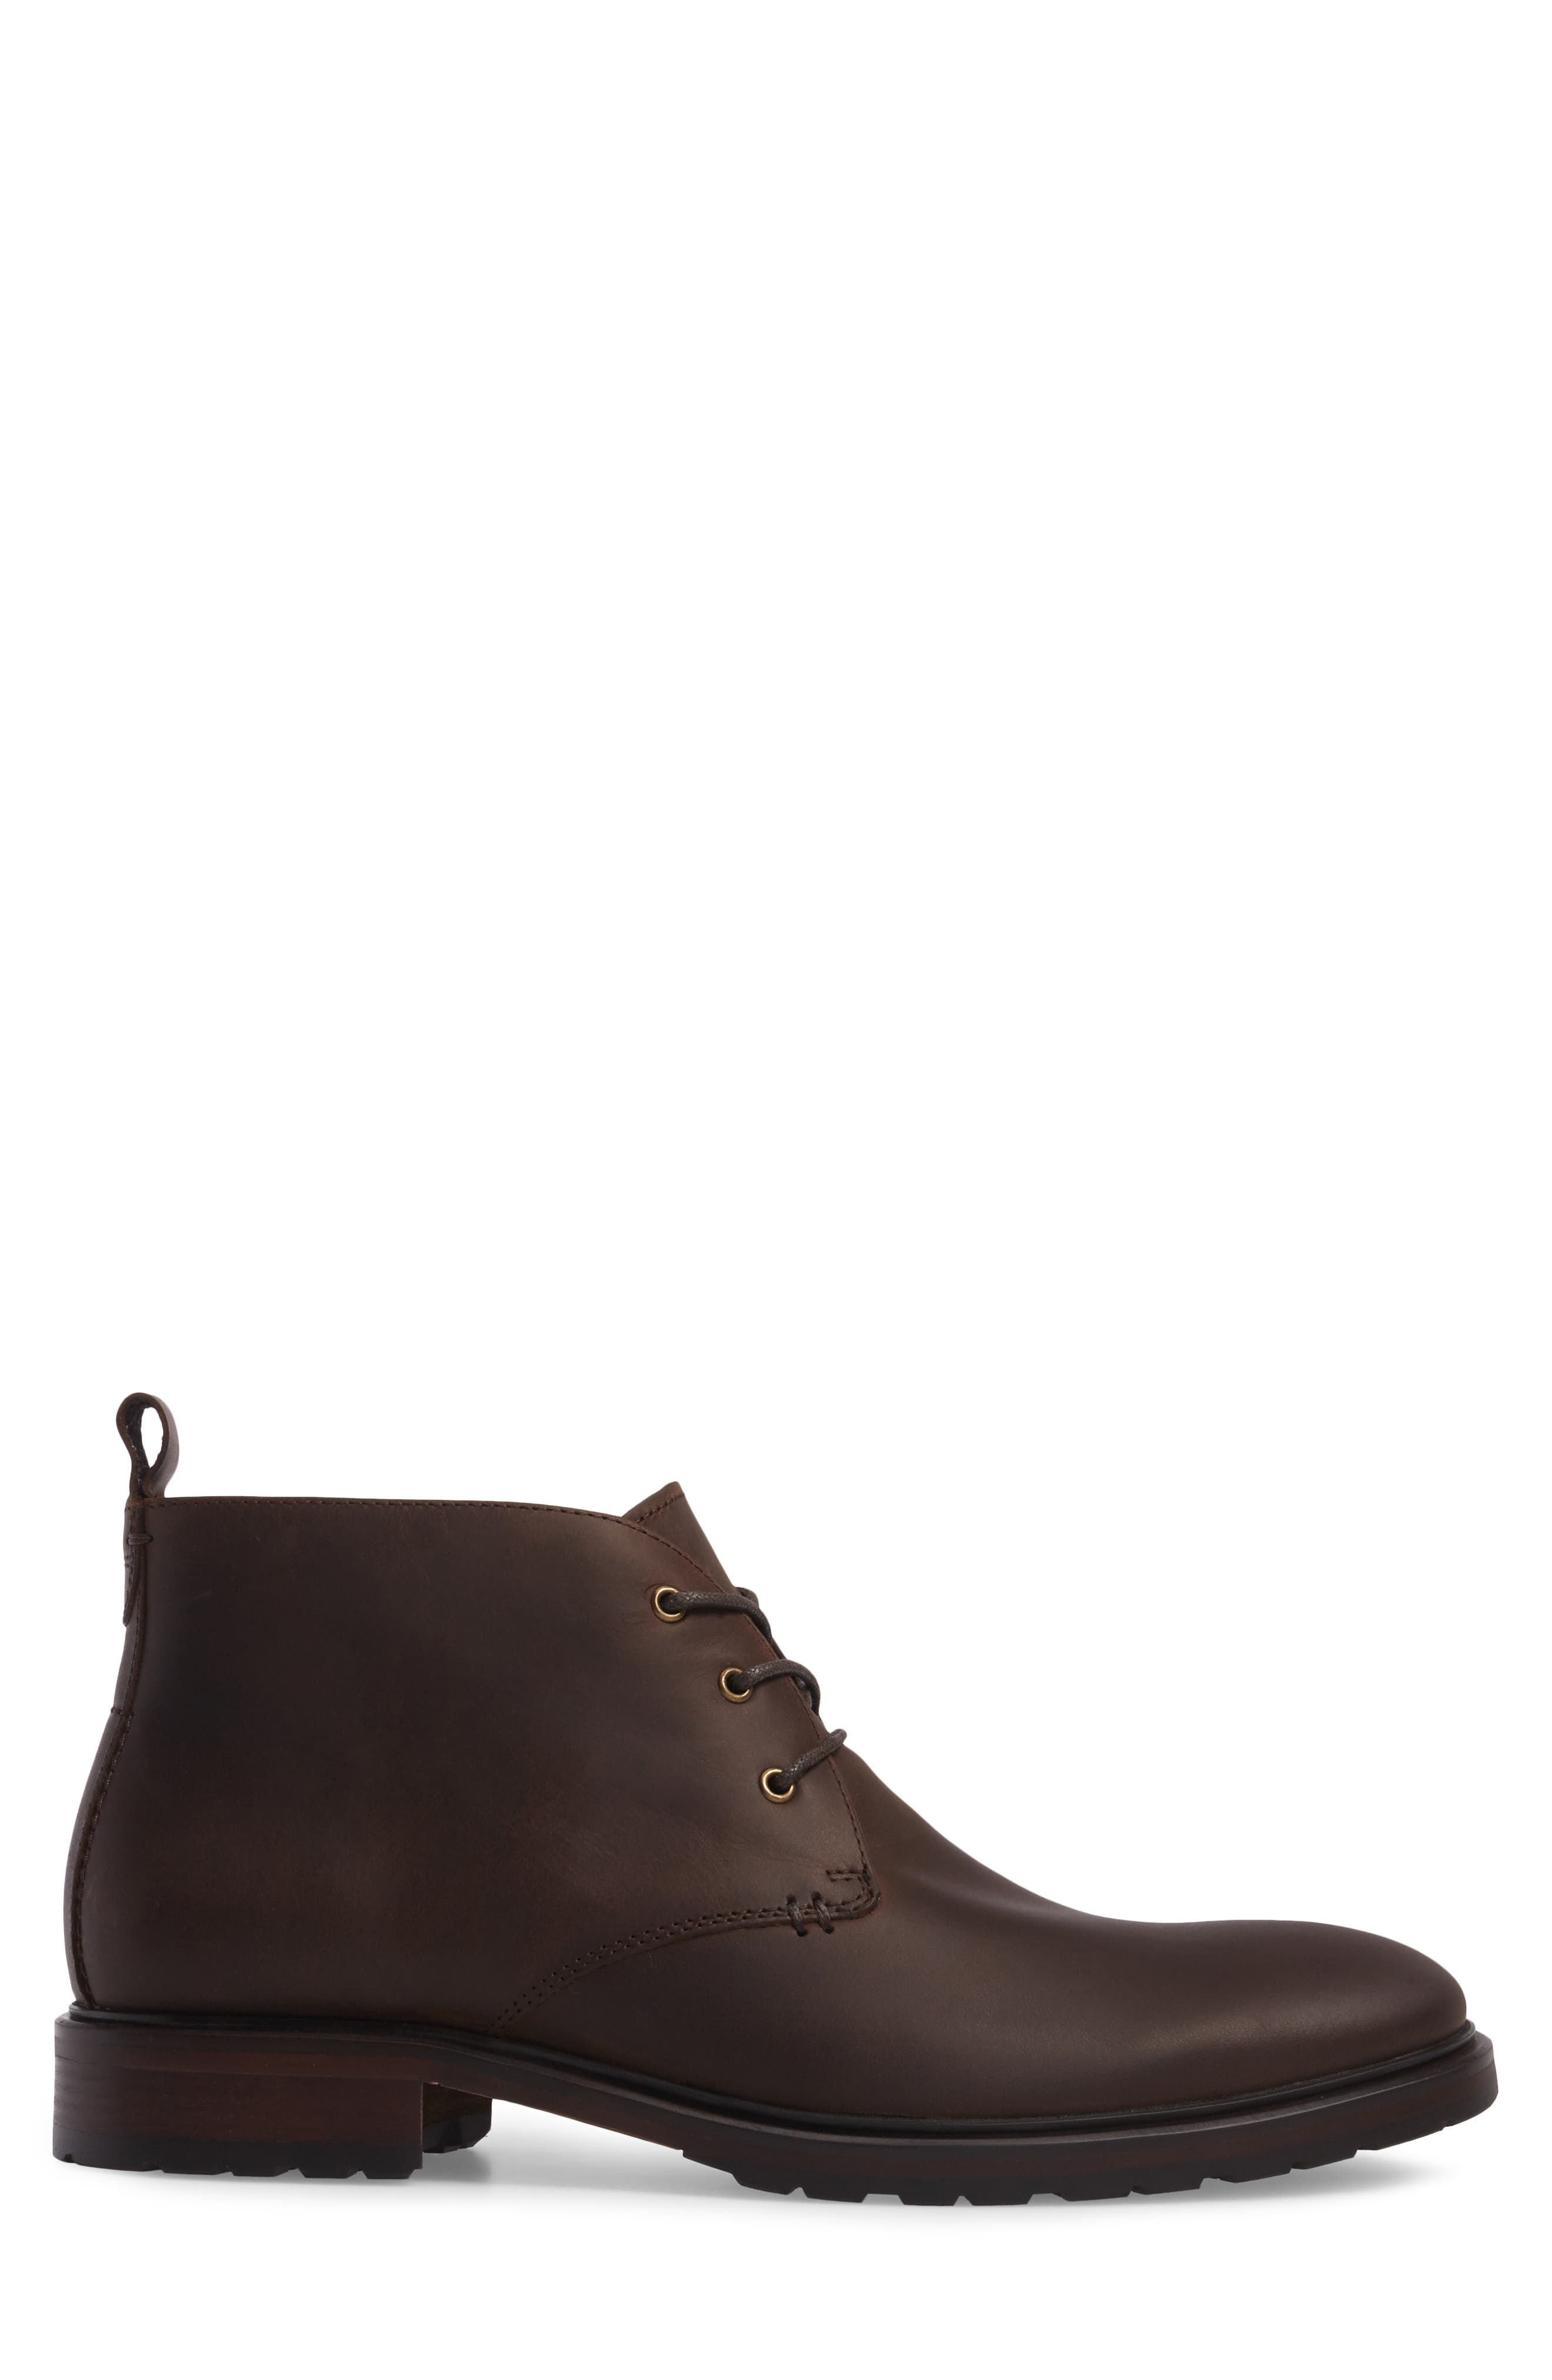 Myles Chukka Boot,                             Alternate thumbnail 3, color,                             Dark Brown Leather